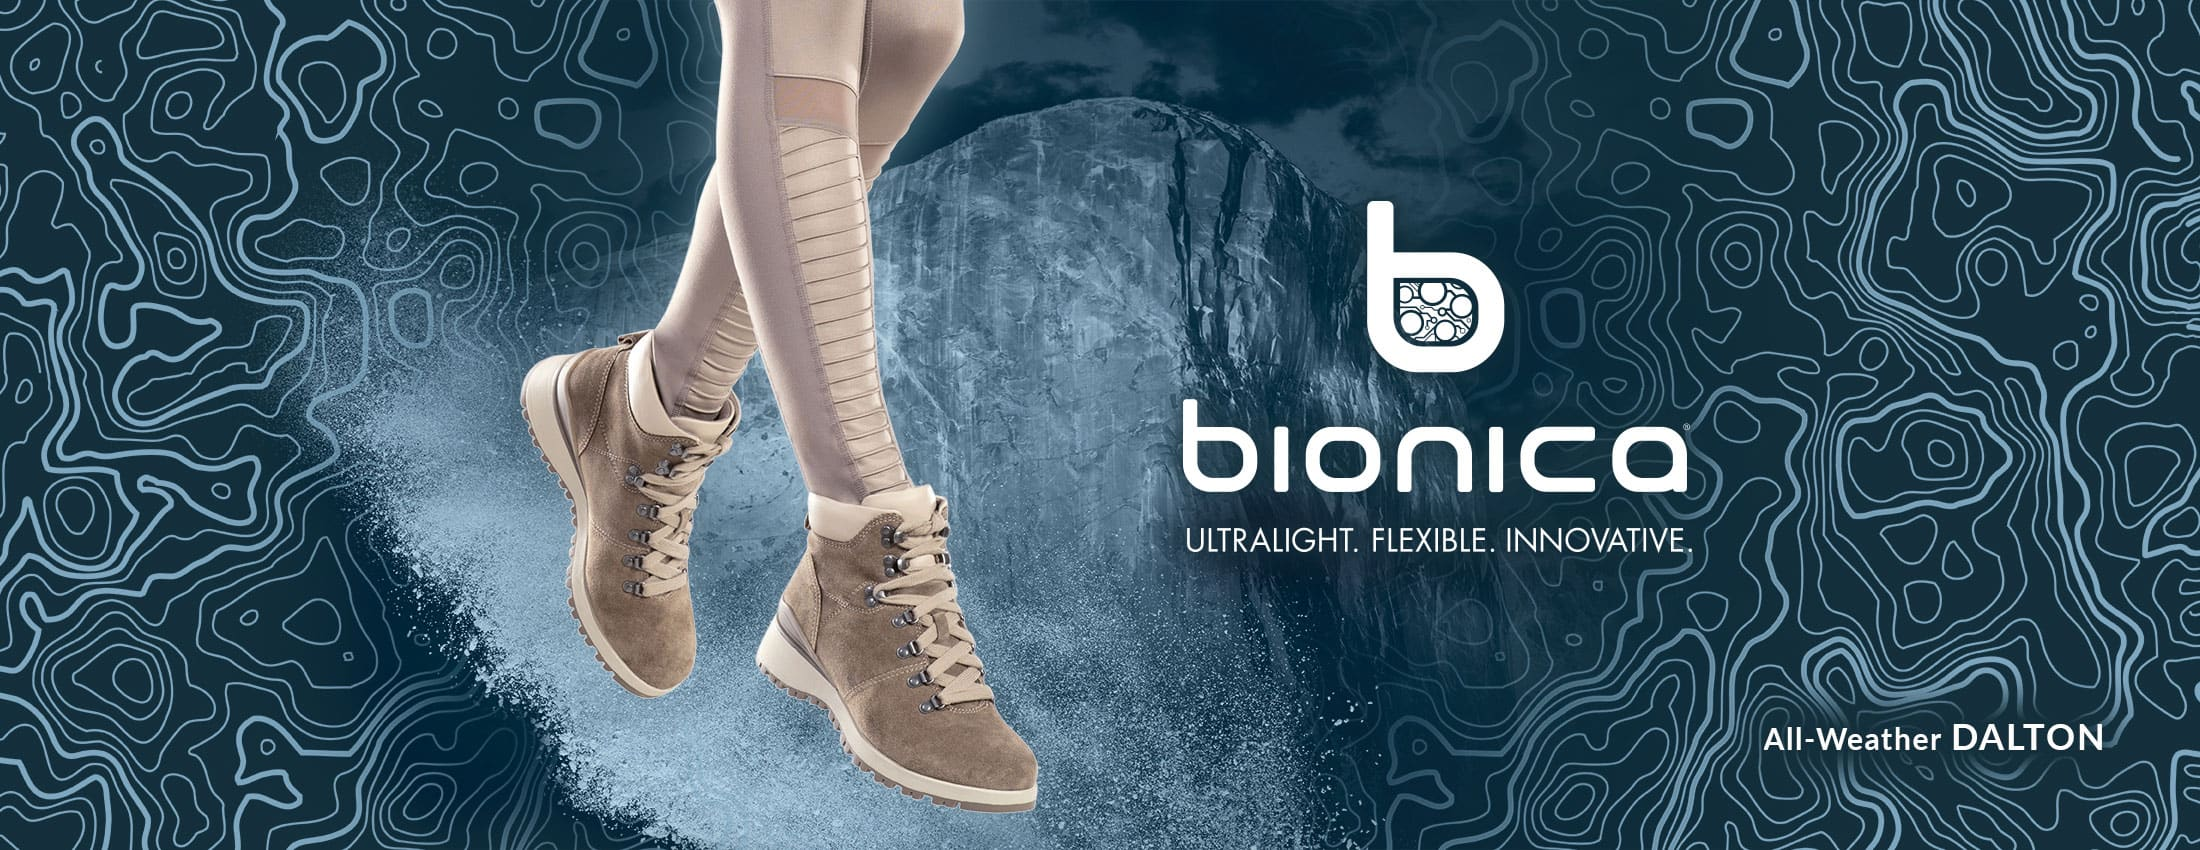 Bionica: Ultralight, Flexible, Innovative. Featured style: All-Weather Dalton boot, shown in light grey-cream on jumping model